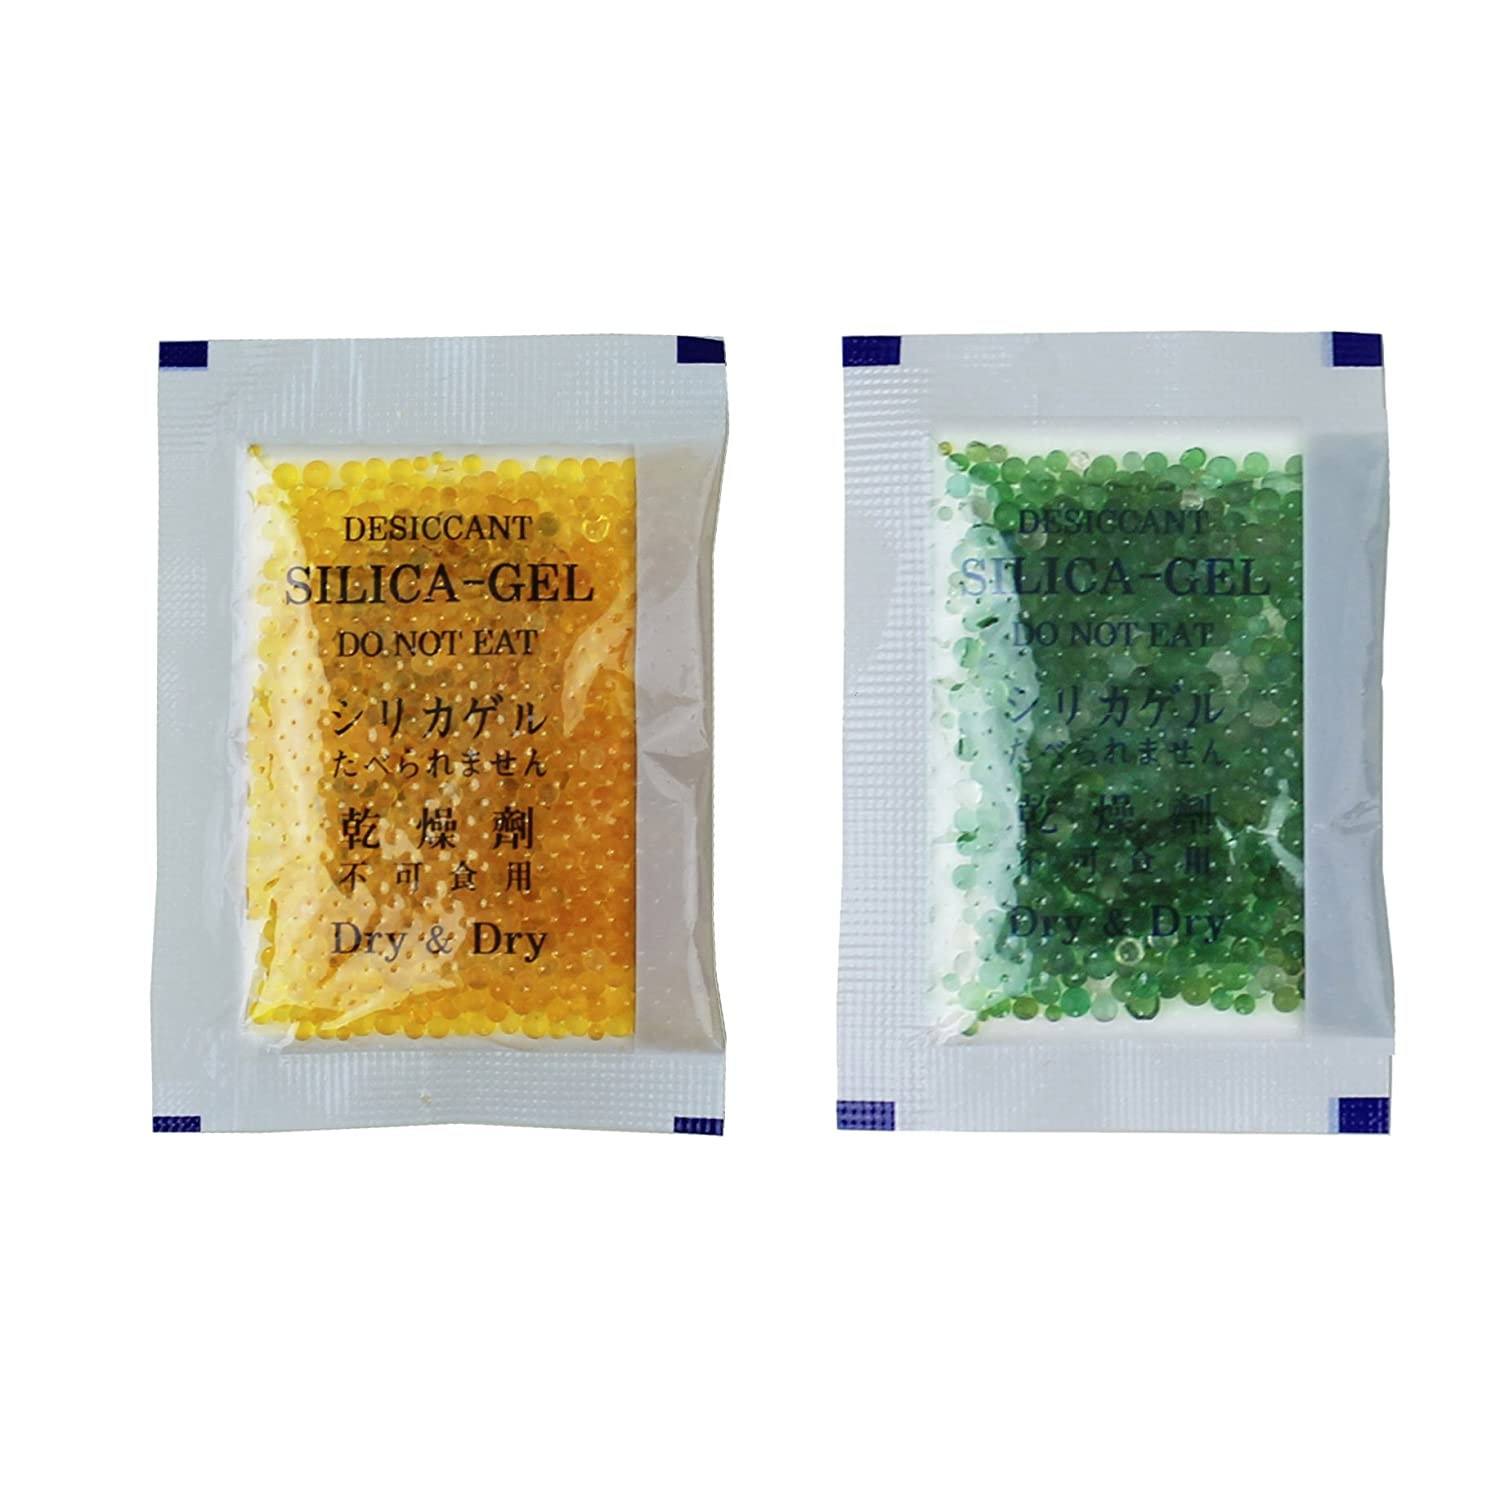 Dry & Dry 10 Gram [50 Packets] Premium Silica Gel Orange Indicating(Orange to Dark Green) Silica Gel Packets Desiccant Dehumidifier - Rechargeable Silica Packets for Moisture Absorber Silica Gel Packs